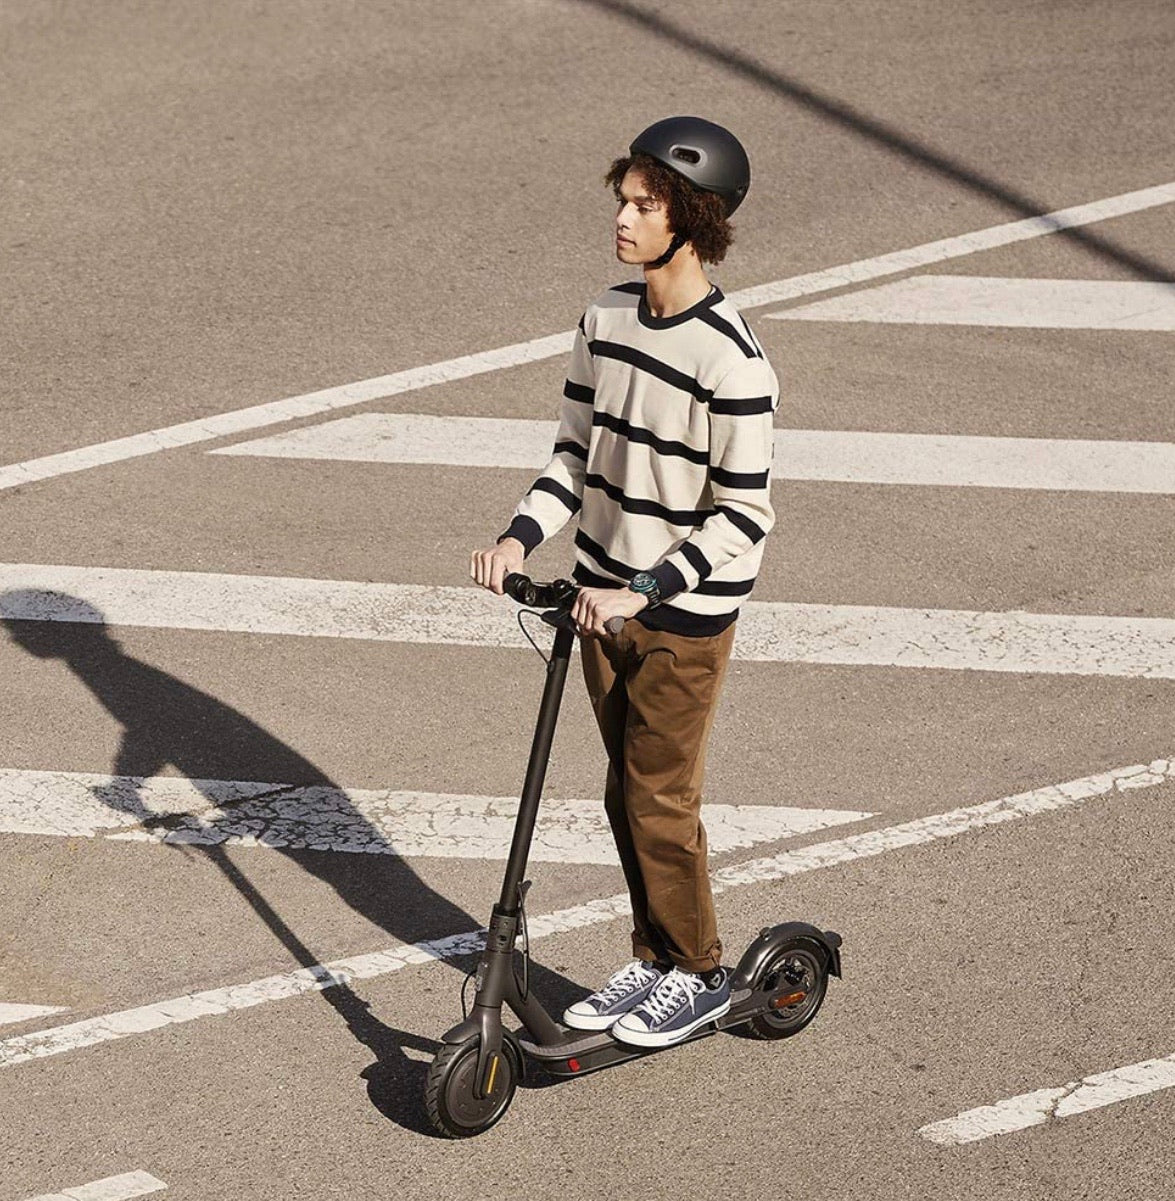 Xiaomi Essential Lite Electric Scooter in Use